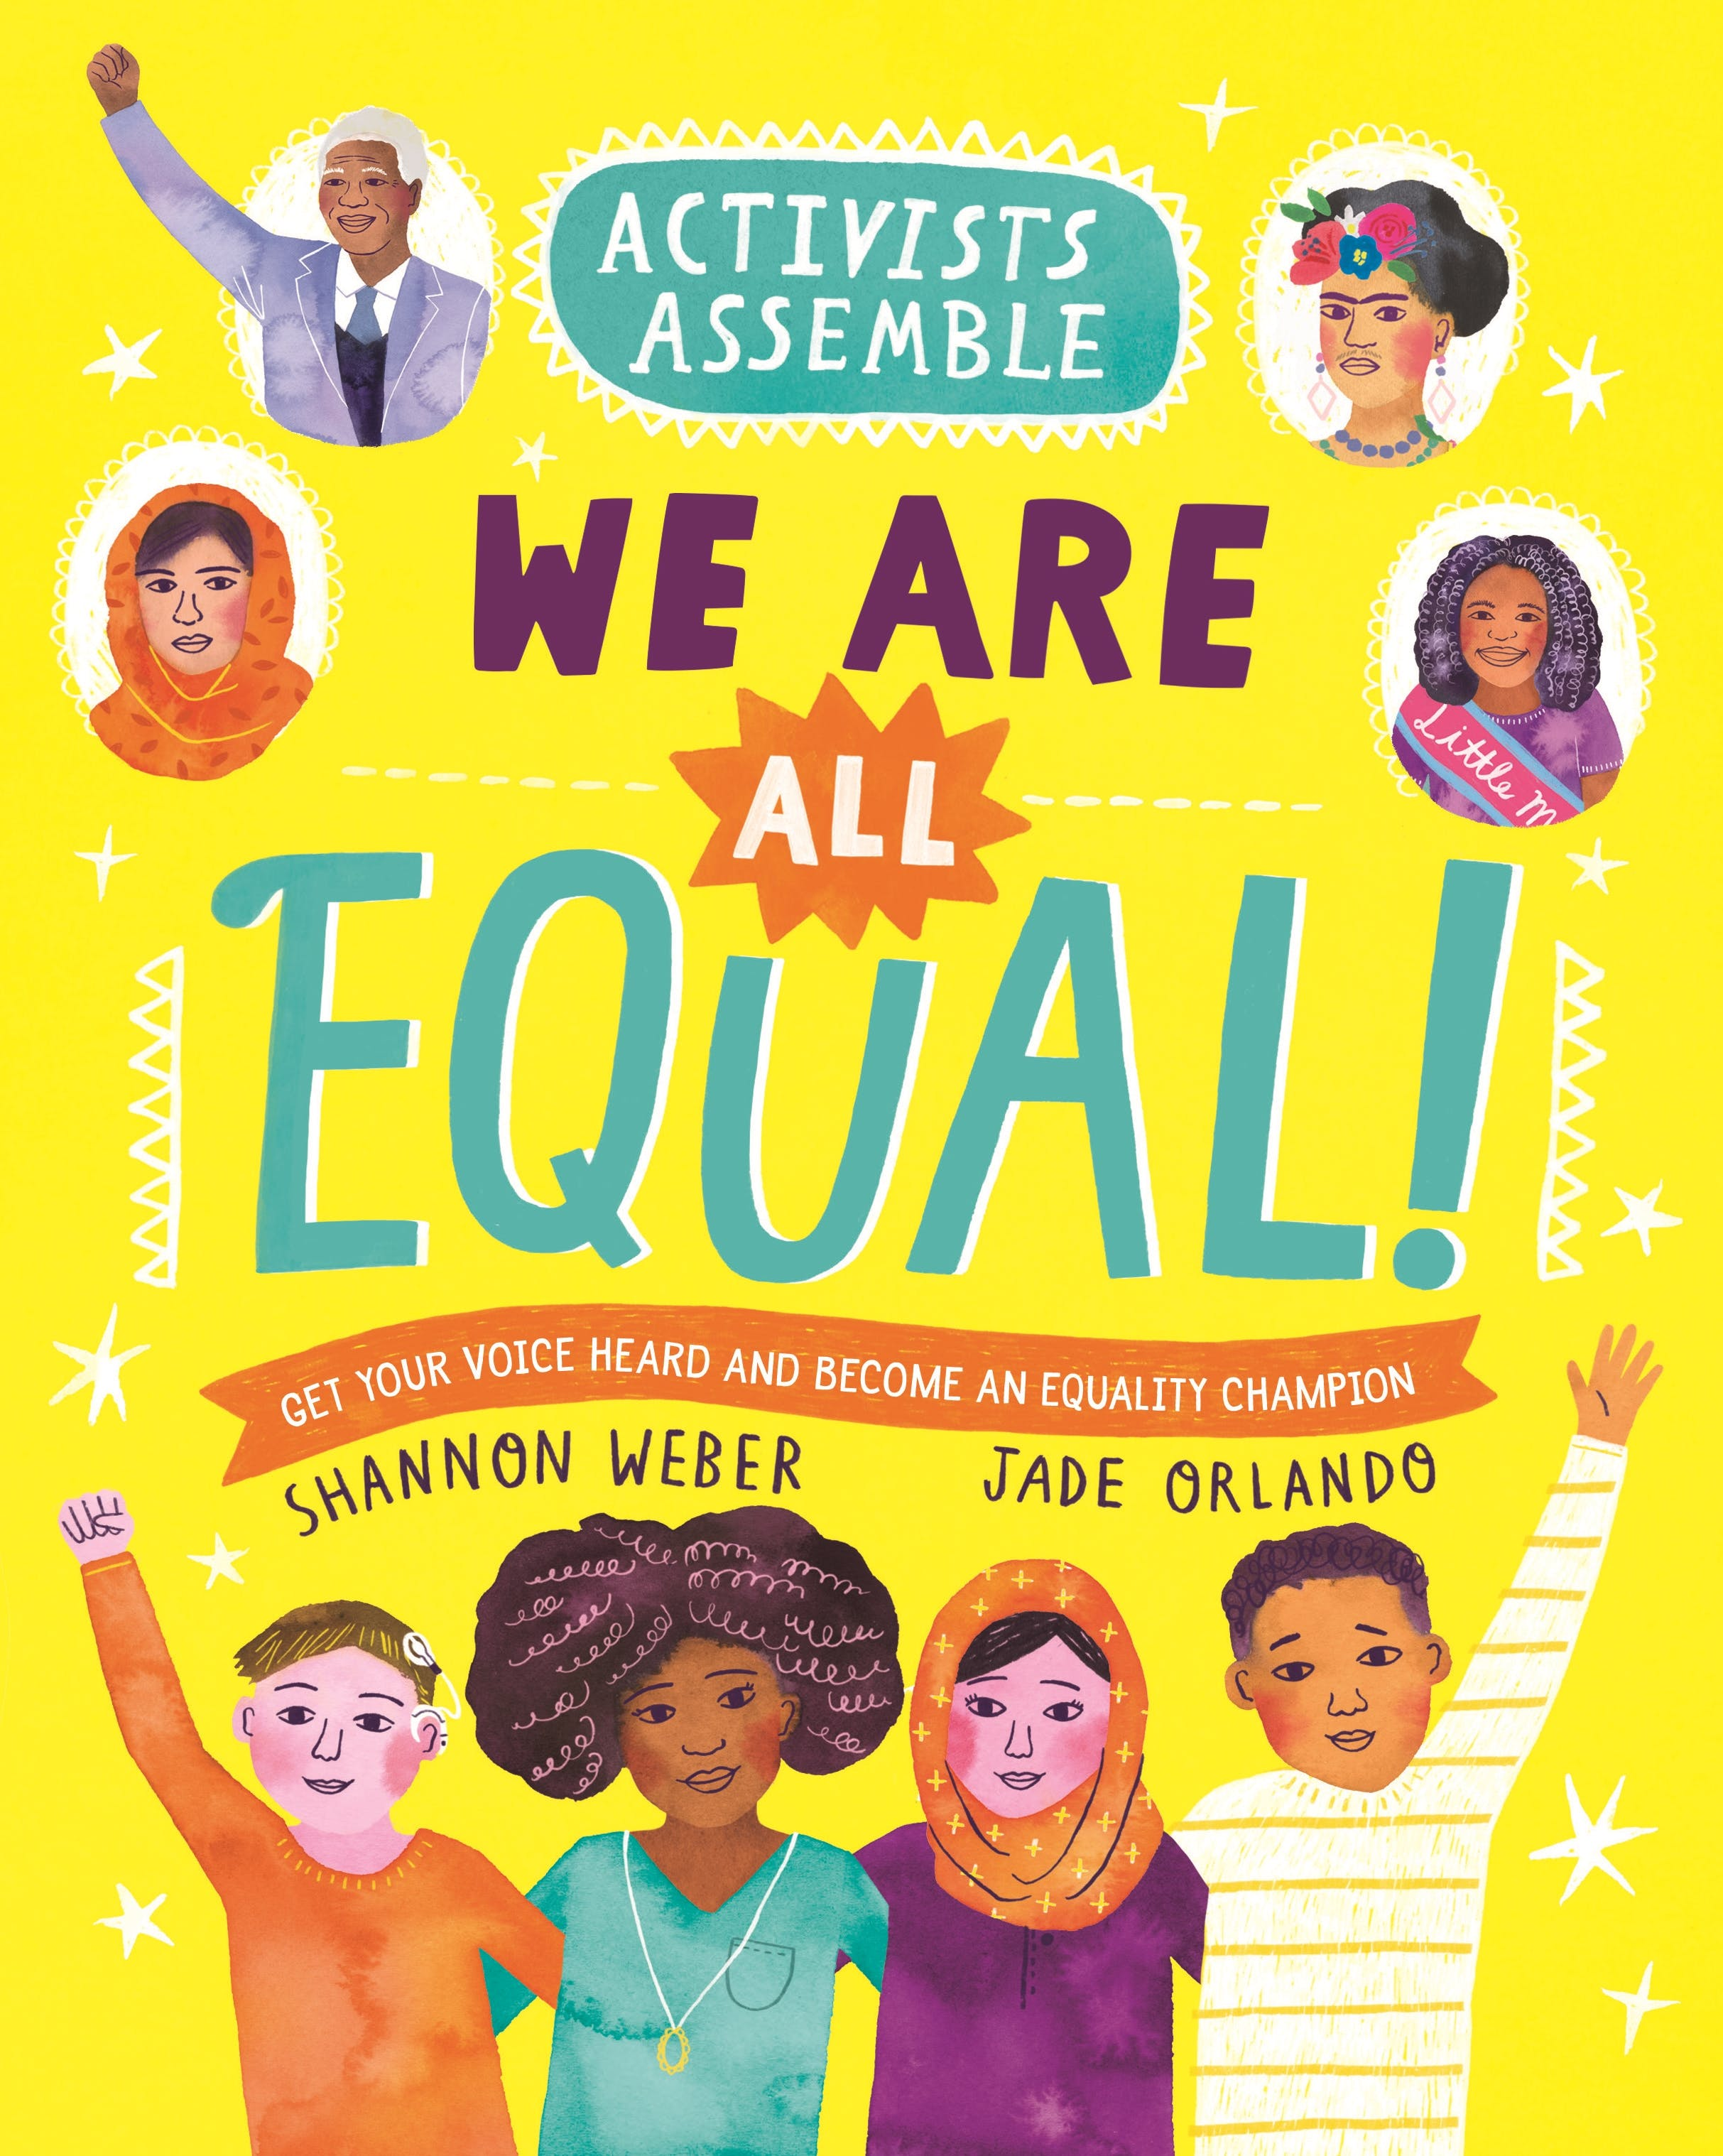 Image of Activists Assemble—We Are All Equal!